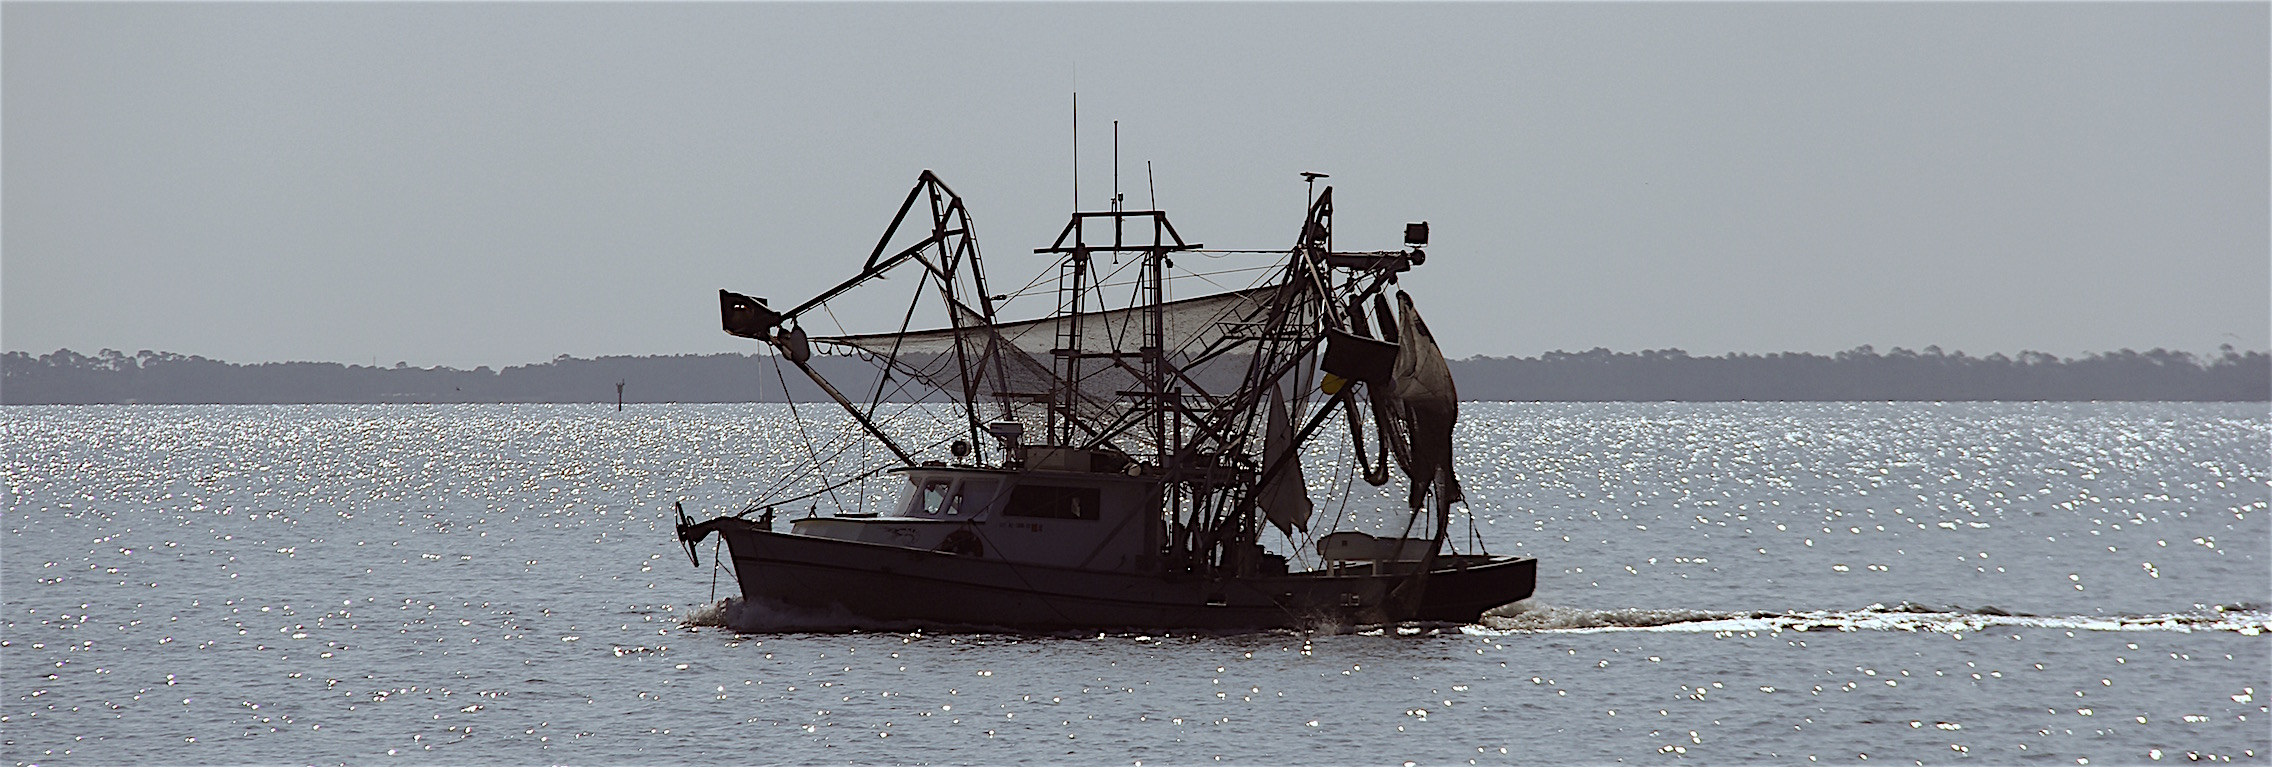 Typical shrimp boat